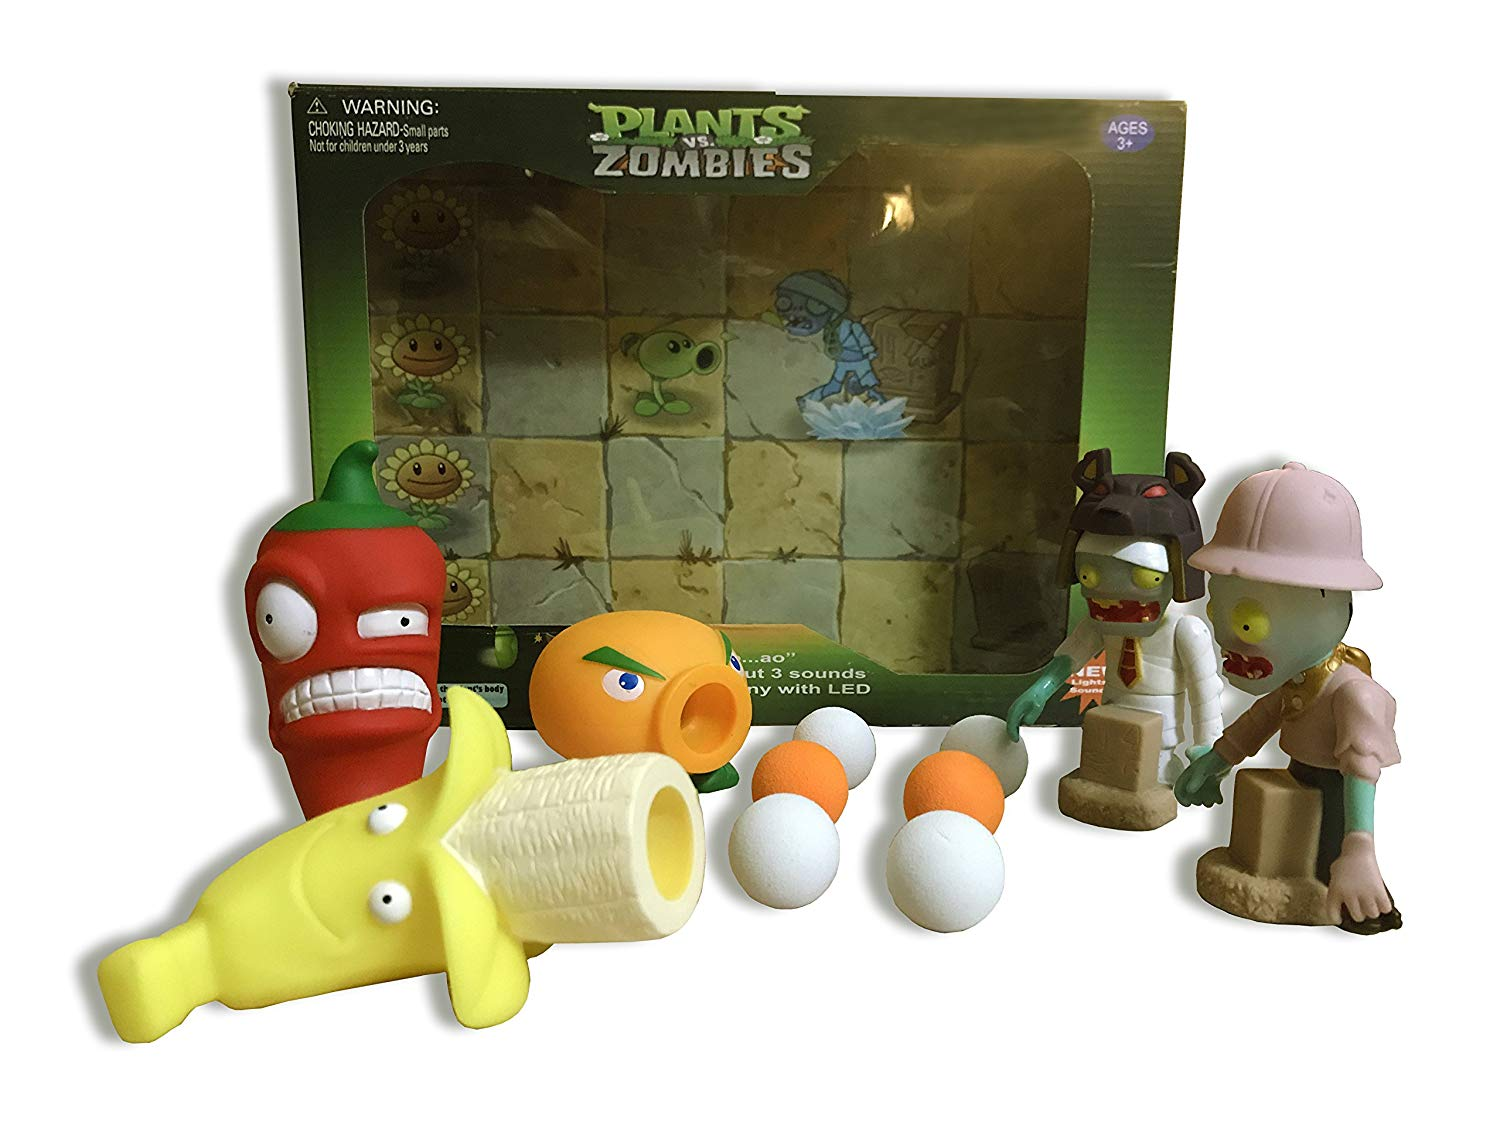 Plants Vs Zombies Gift Box: Banana Launch, Citron, and Jalapeno